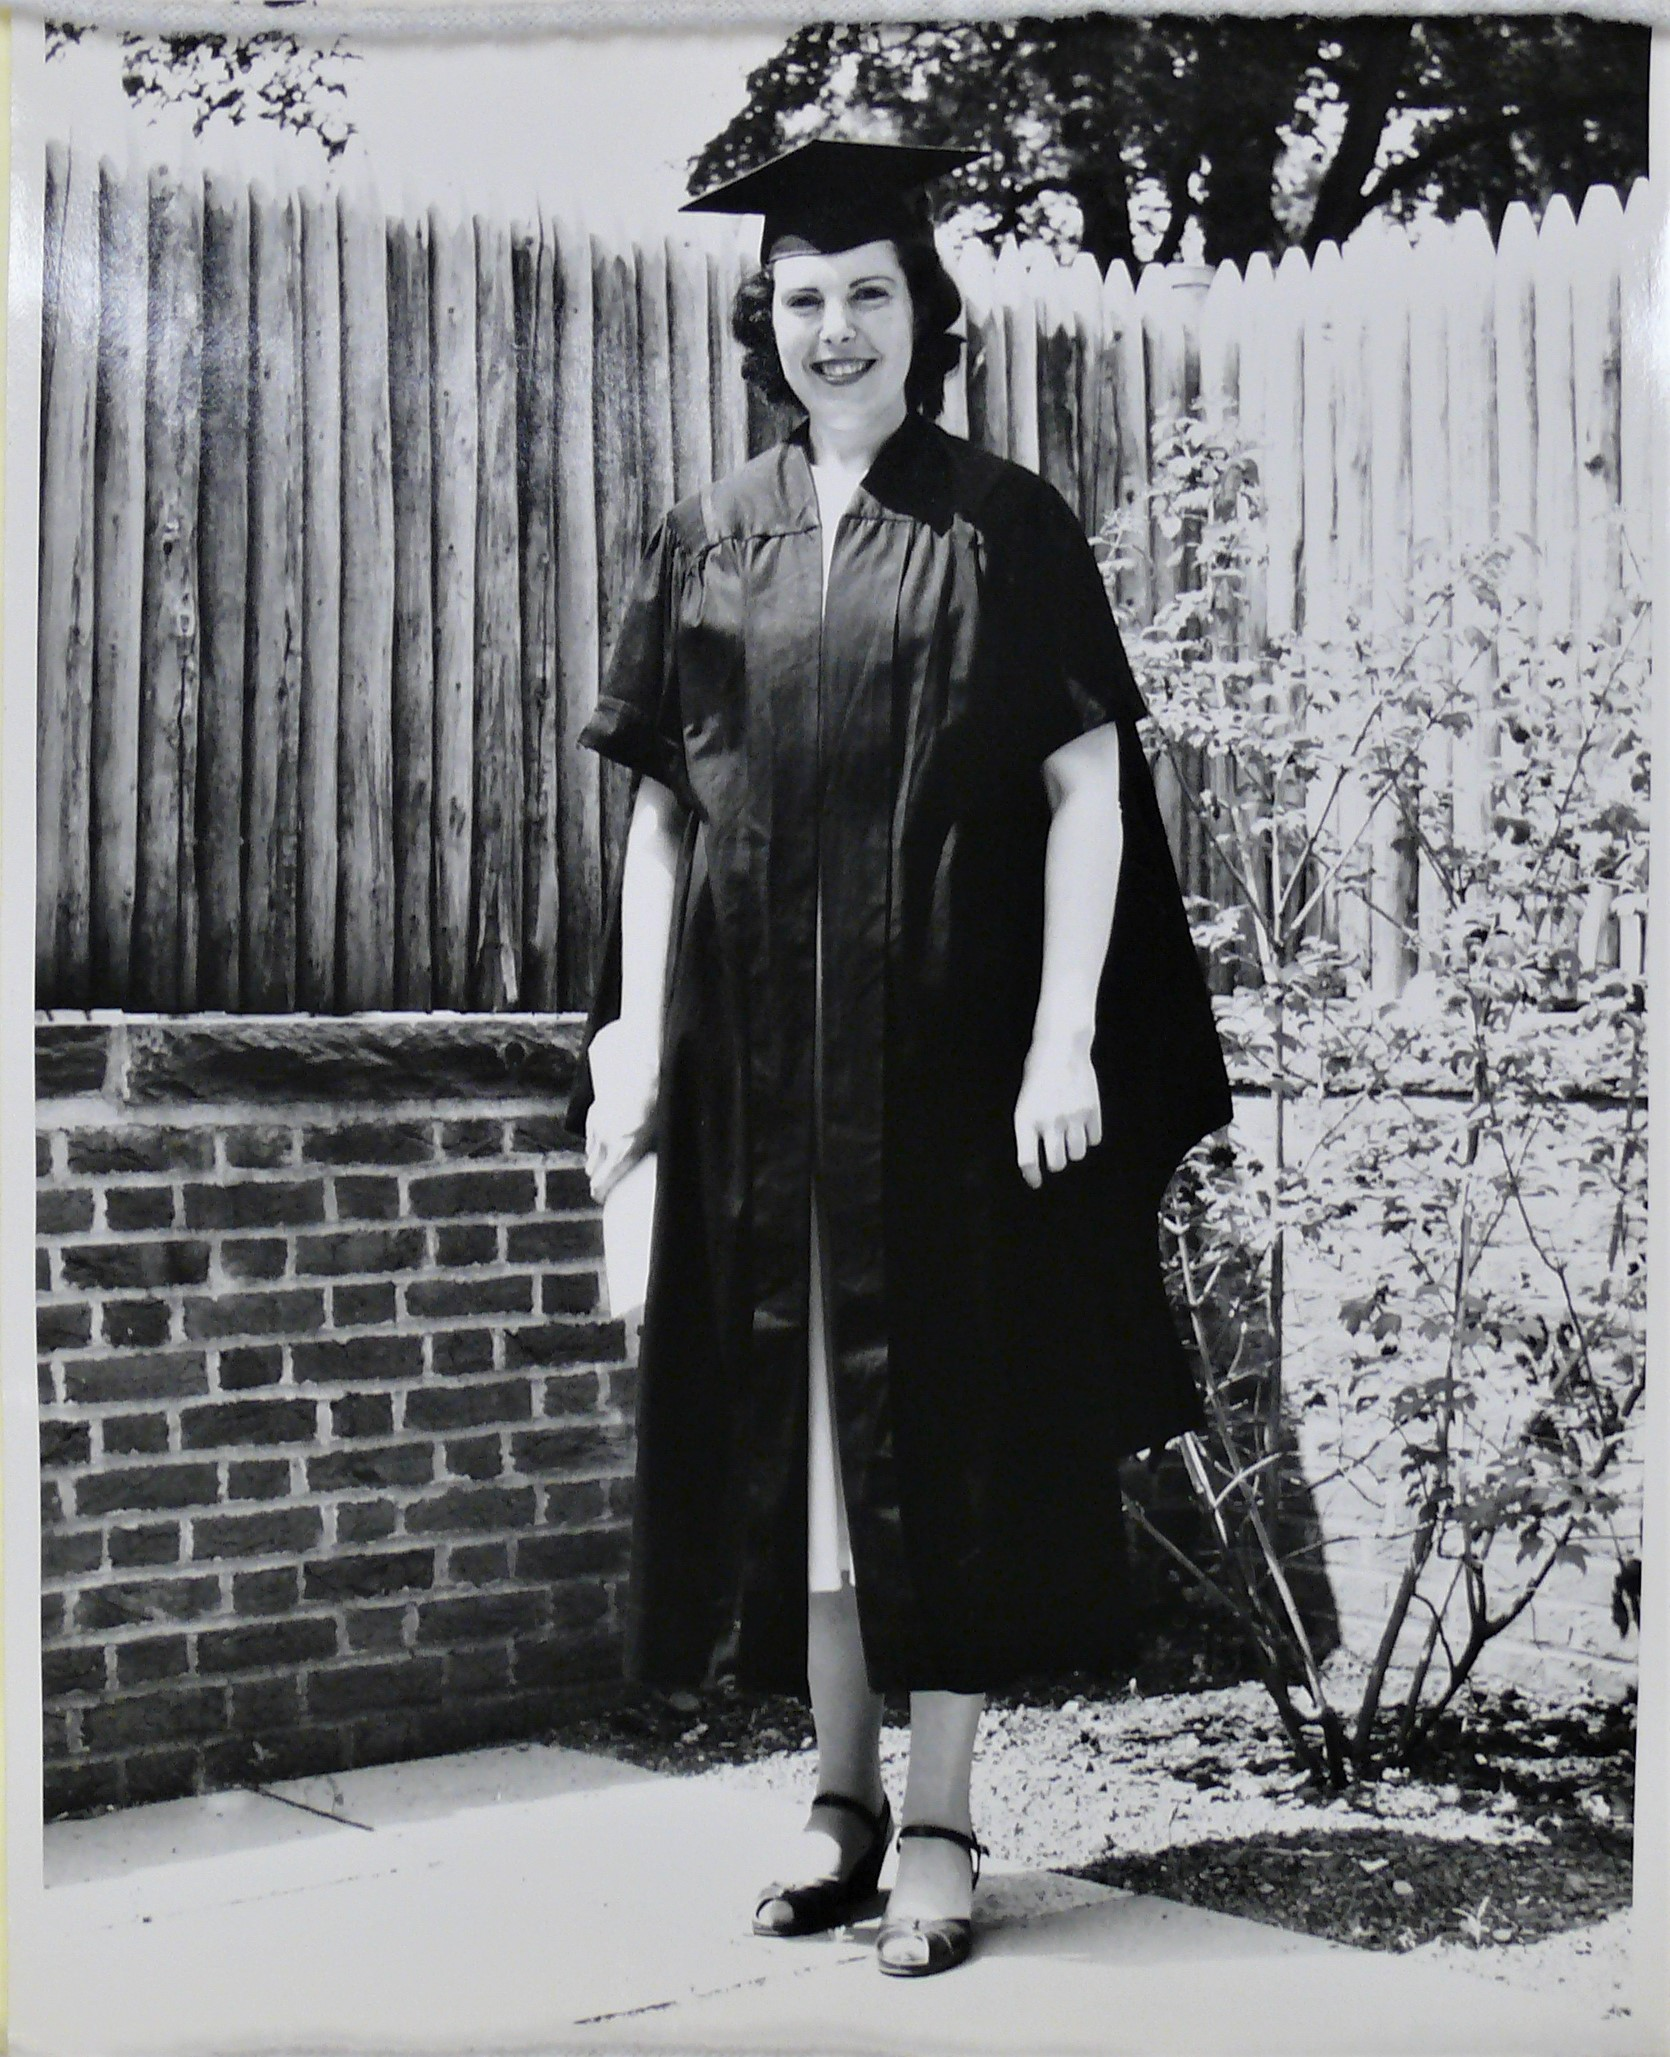 Black and white photograph of Crimilda standing in a graduation cap and gown.